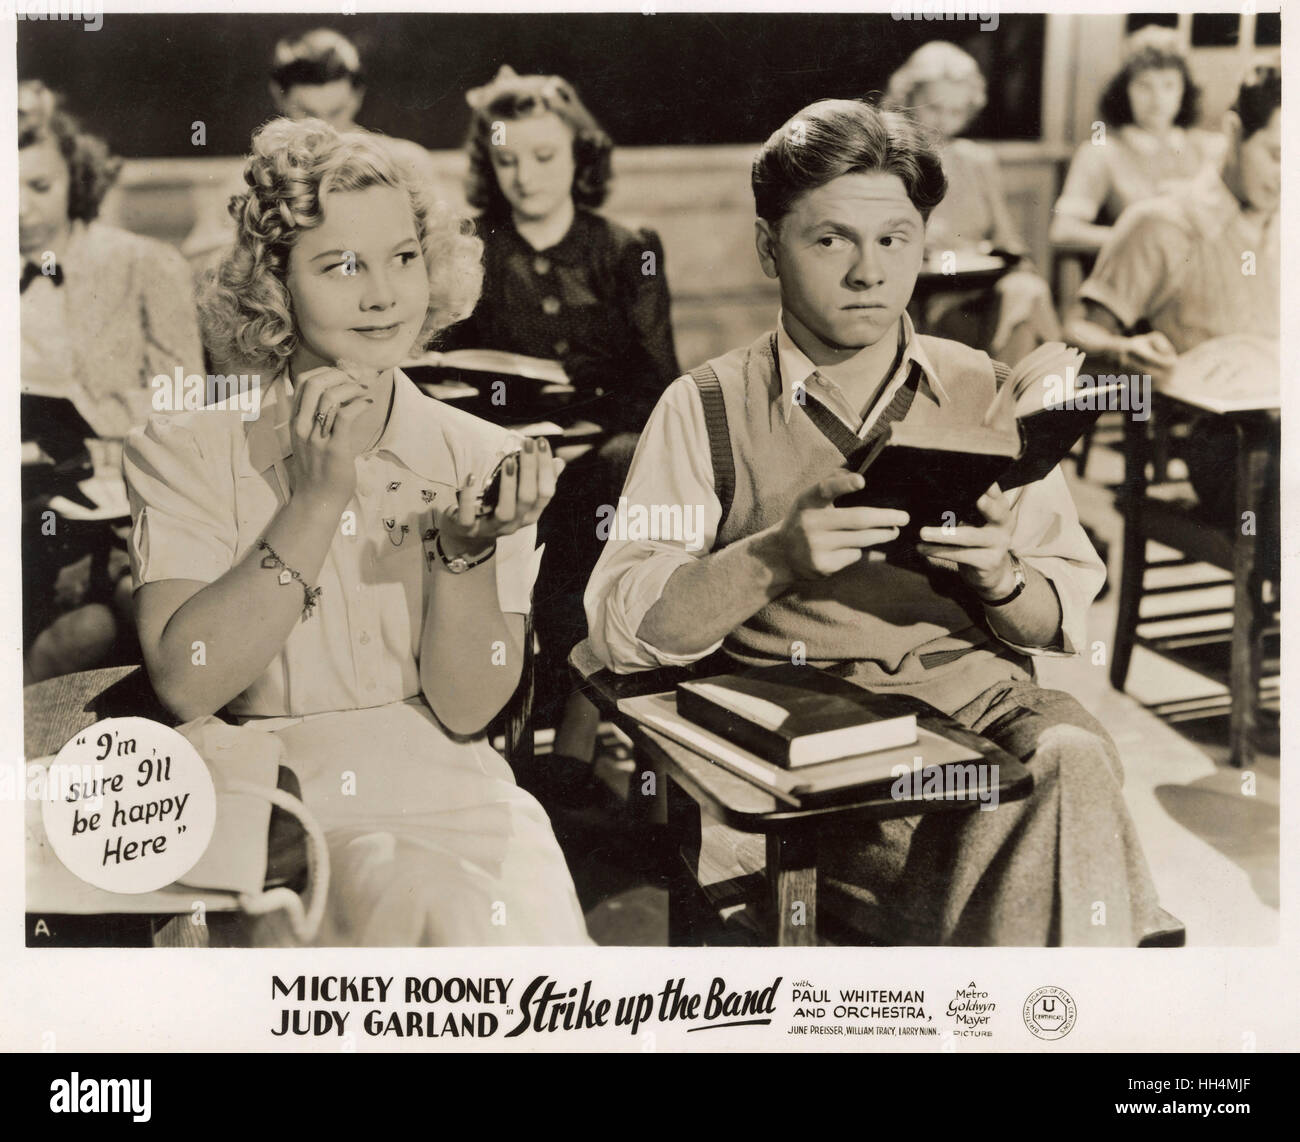 Film - Strike up the Band - starring Mickey Rooney (1920-2014) and Judy Garland (1922-1969) - a 1940 American black - Stock Image